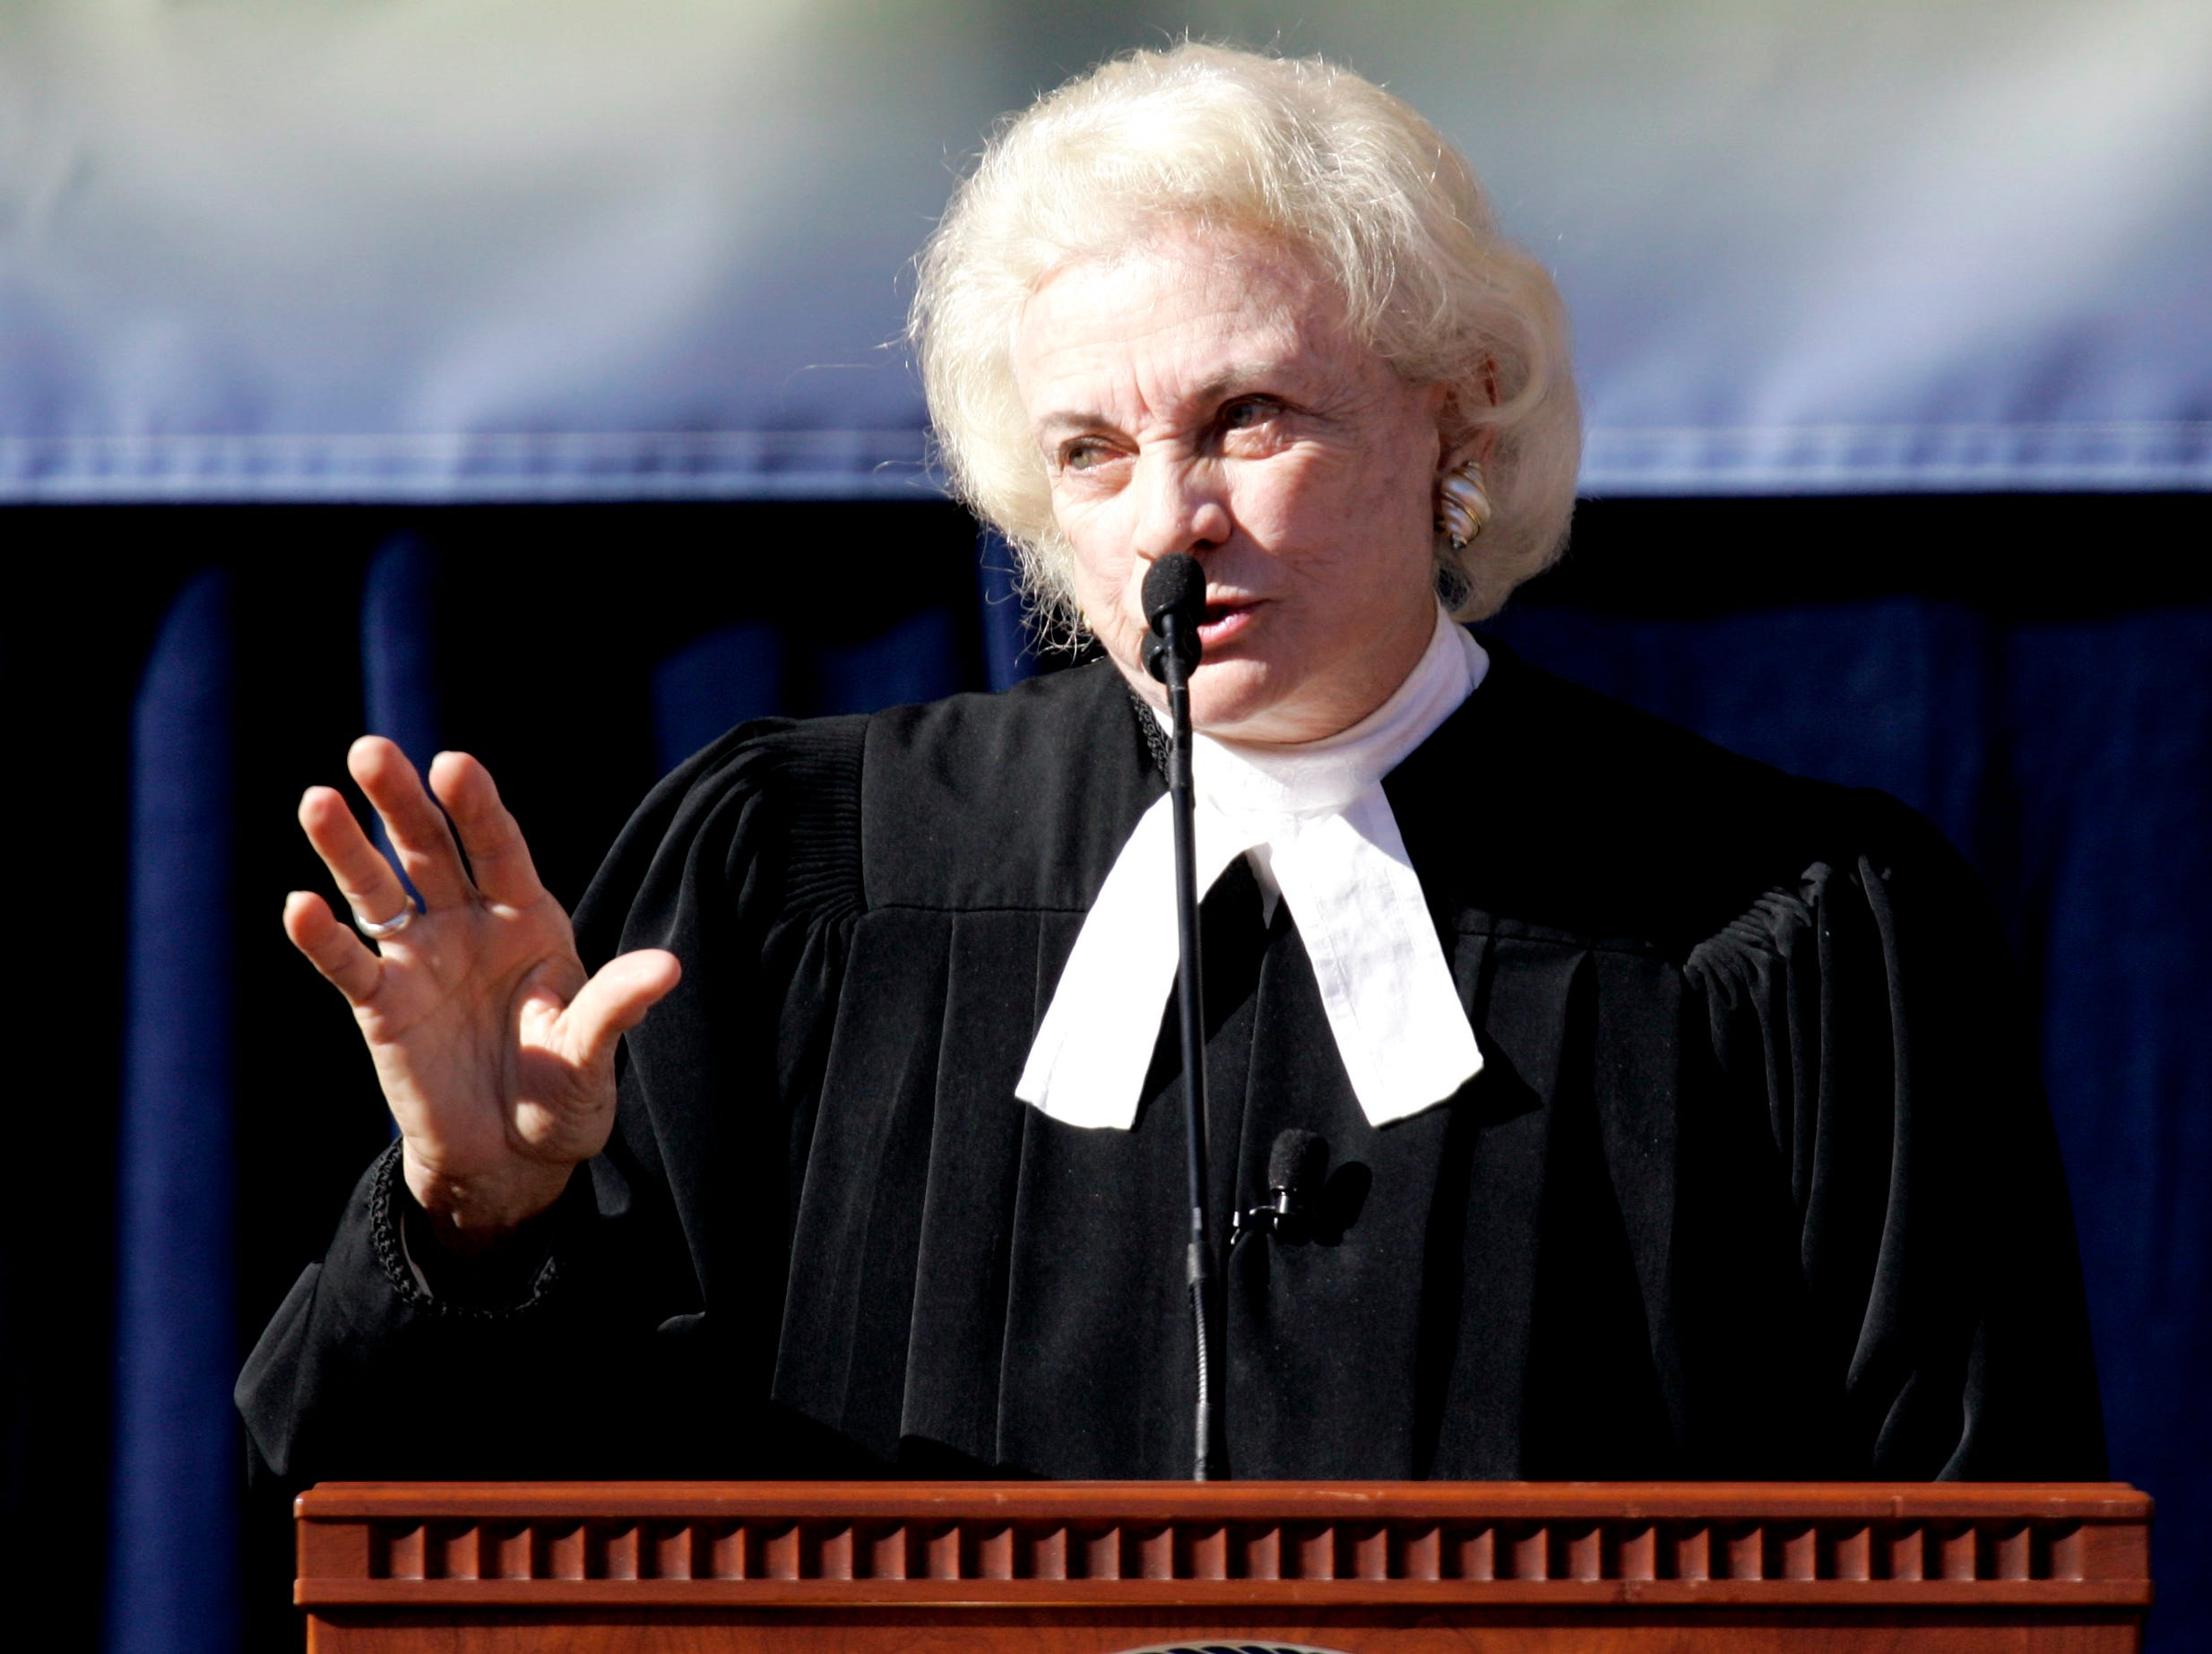 Retired U.S. Supreme Court Justice Sandra Day O'Connor speaks at Arizona Gov. Janet Napolitano's inauguration Thursday, Jan. 4, 2007, in Phoenix. O'Connor swore in Napolitano who was re-elected for a second term in November 2006.